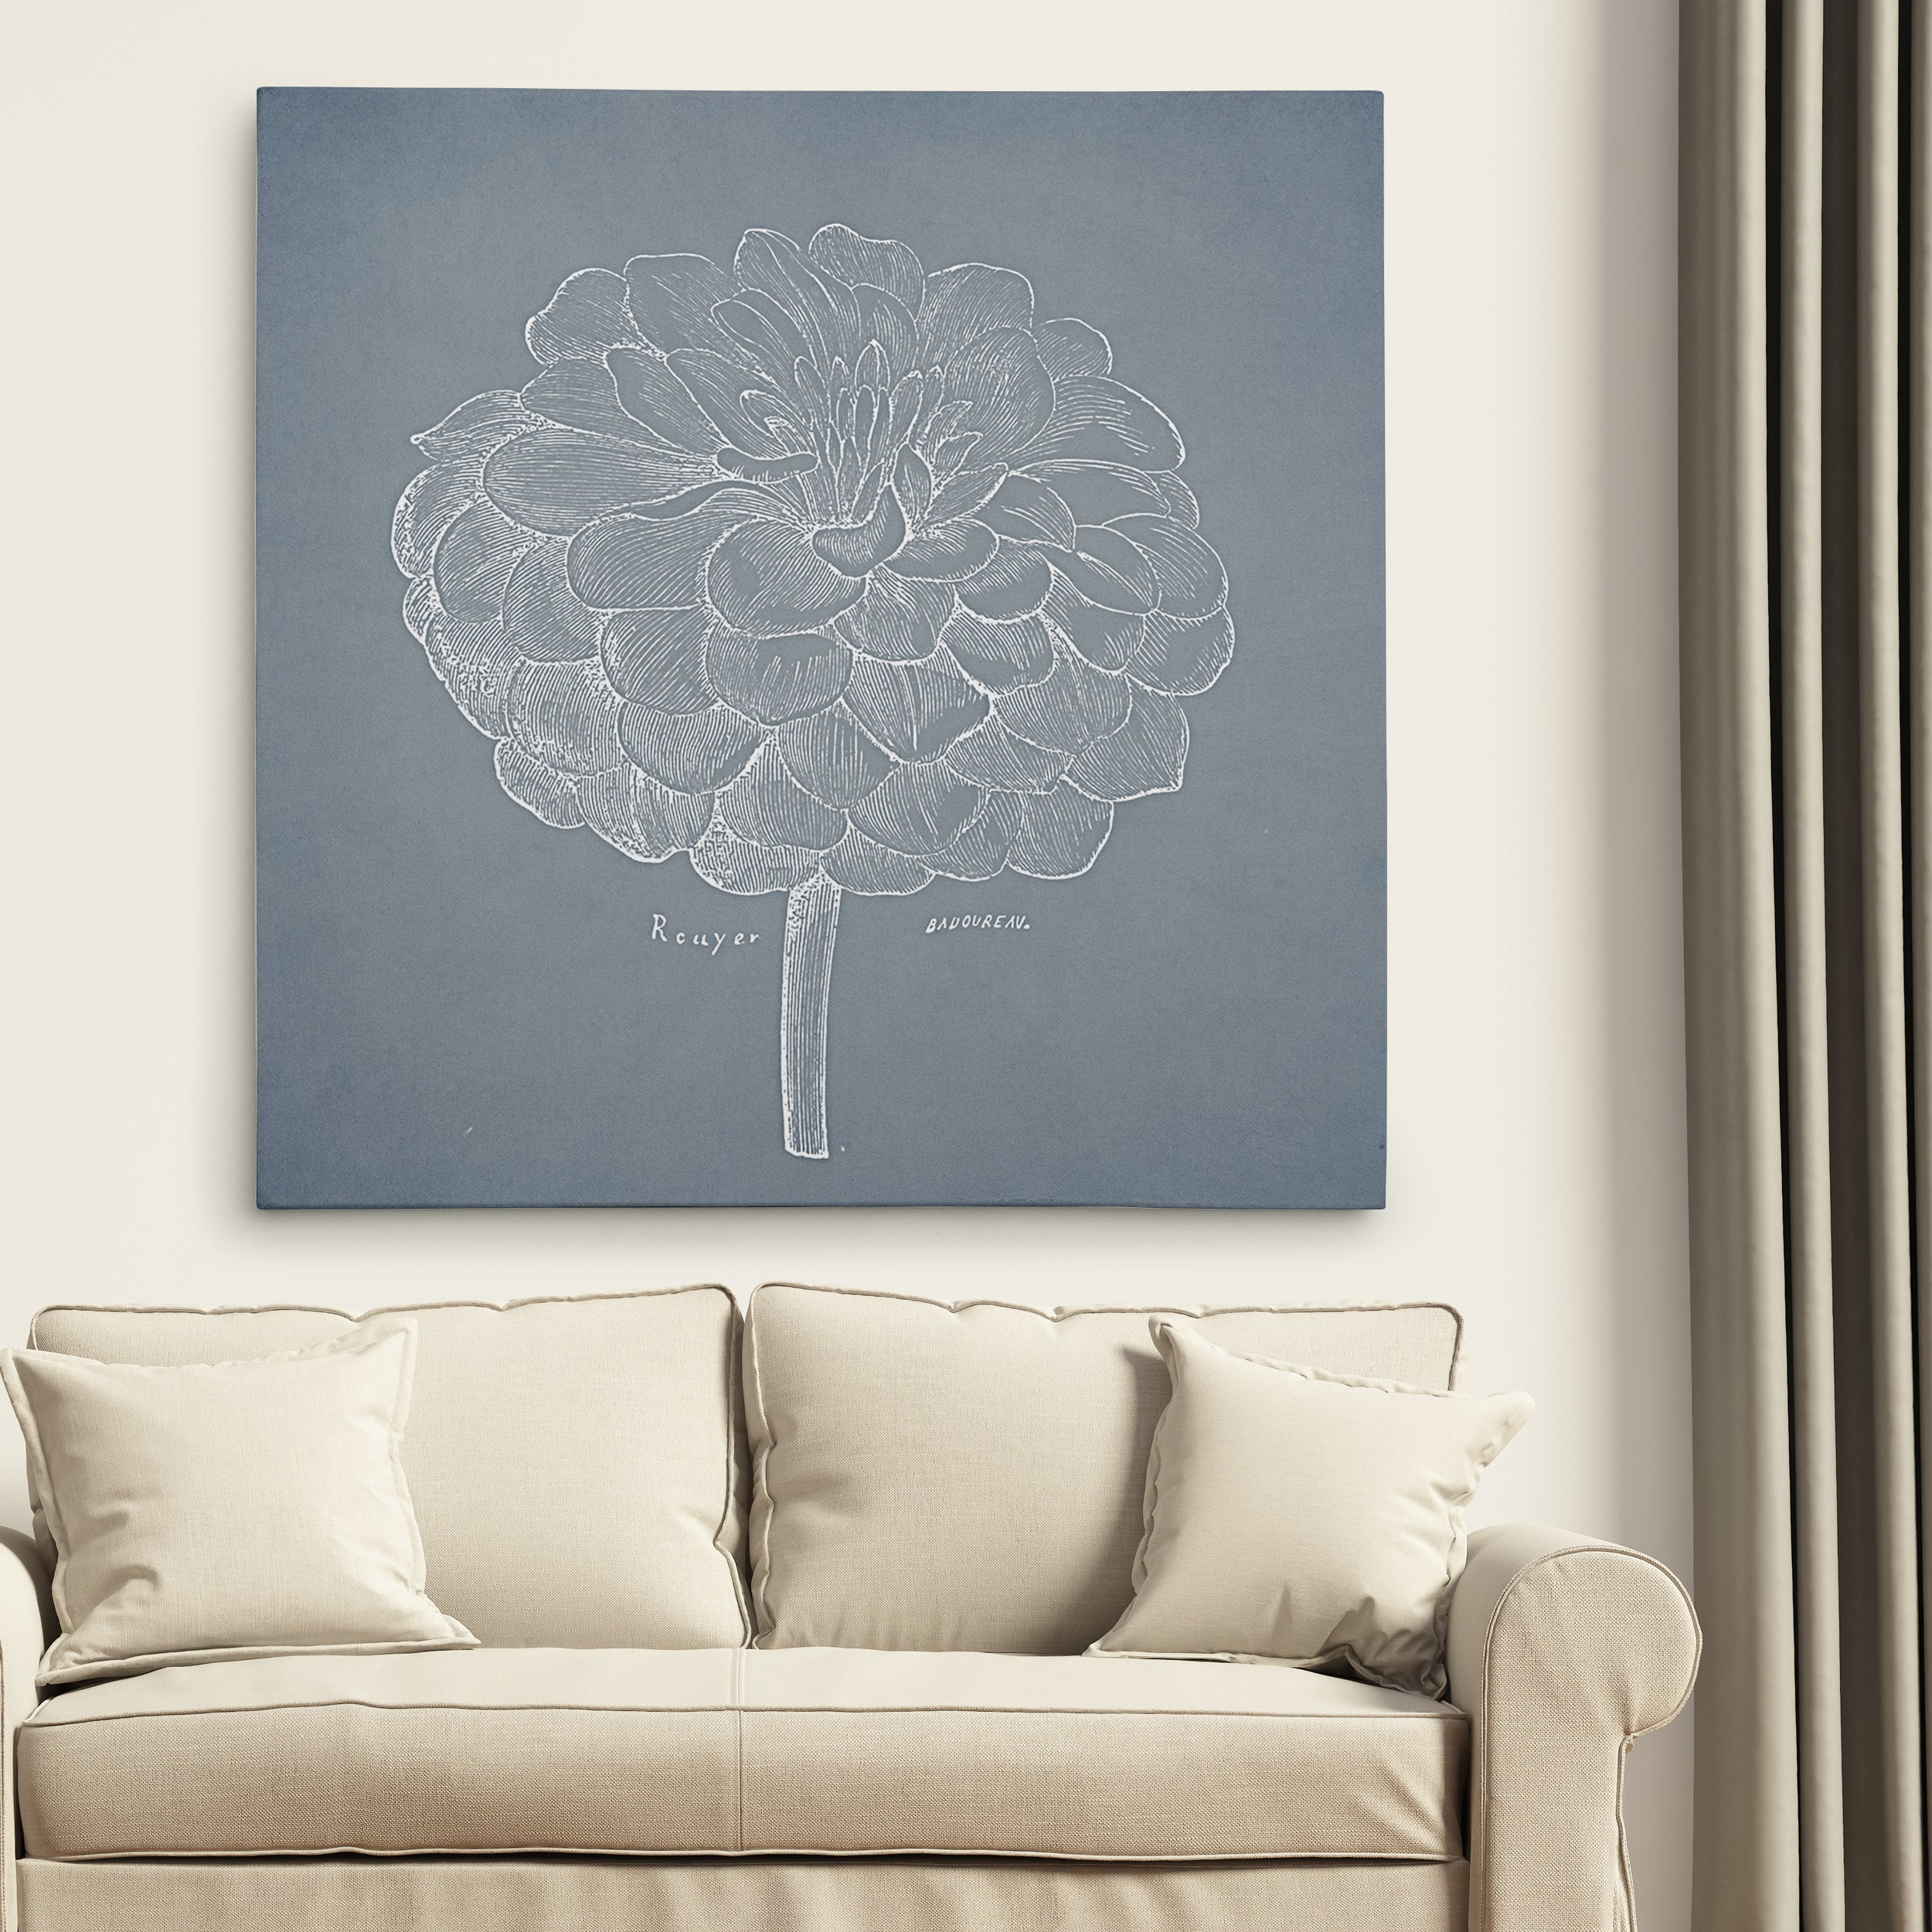 Wexford Home 'Dusty Floral Sketch I' Wall Art (24 x 24), ...